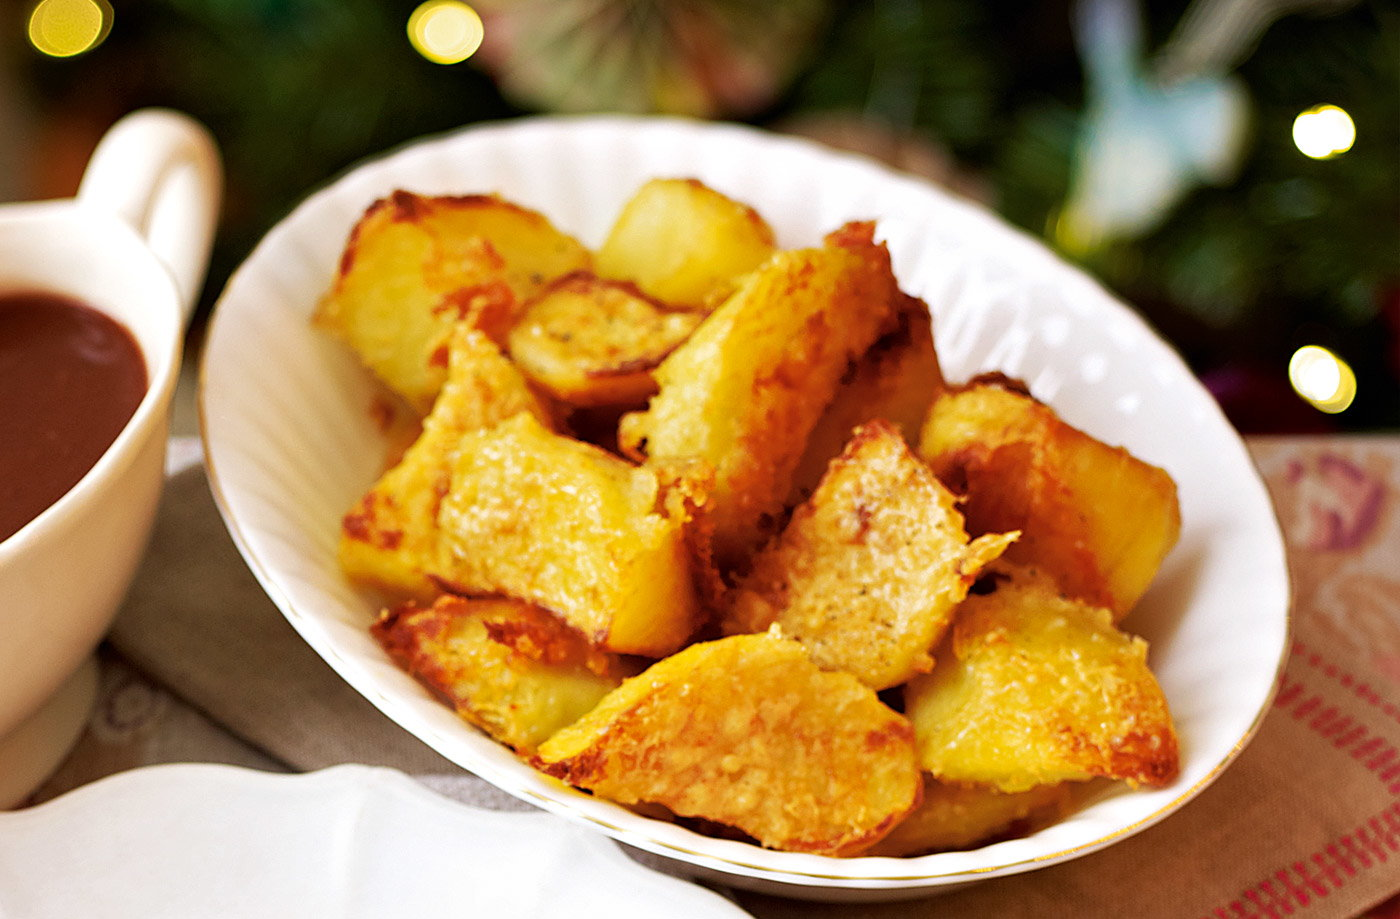 Roast potatoes with Parmesan recipe